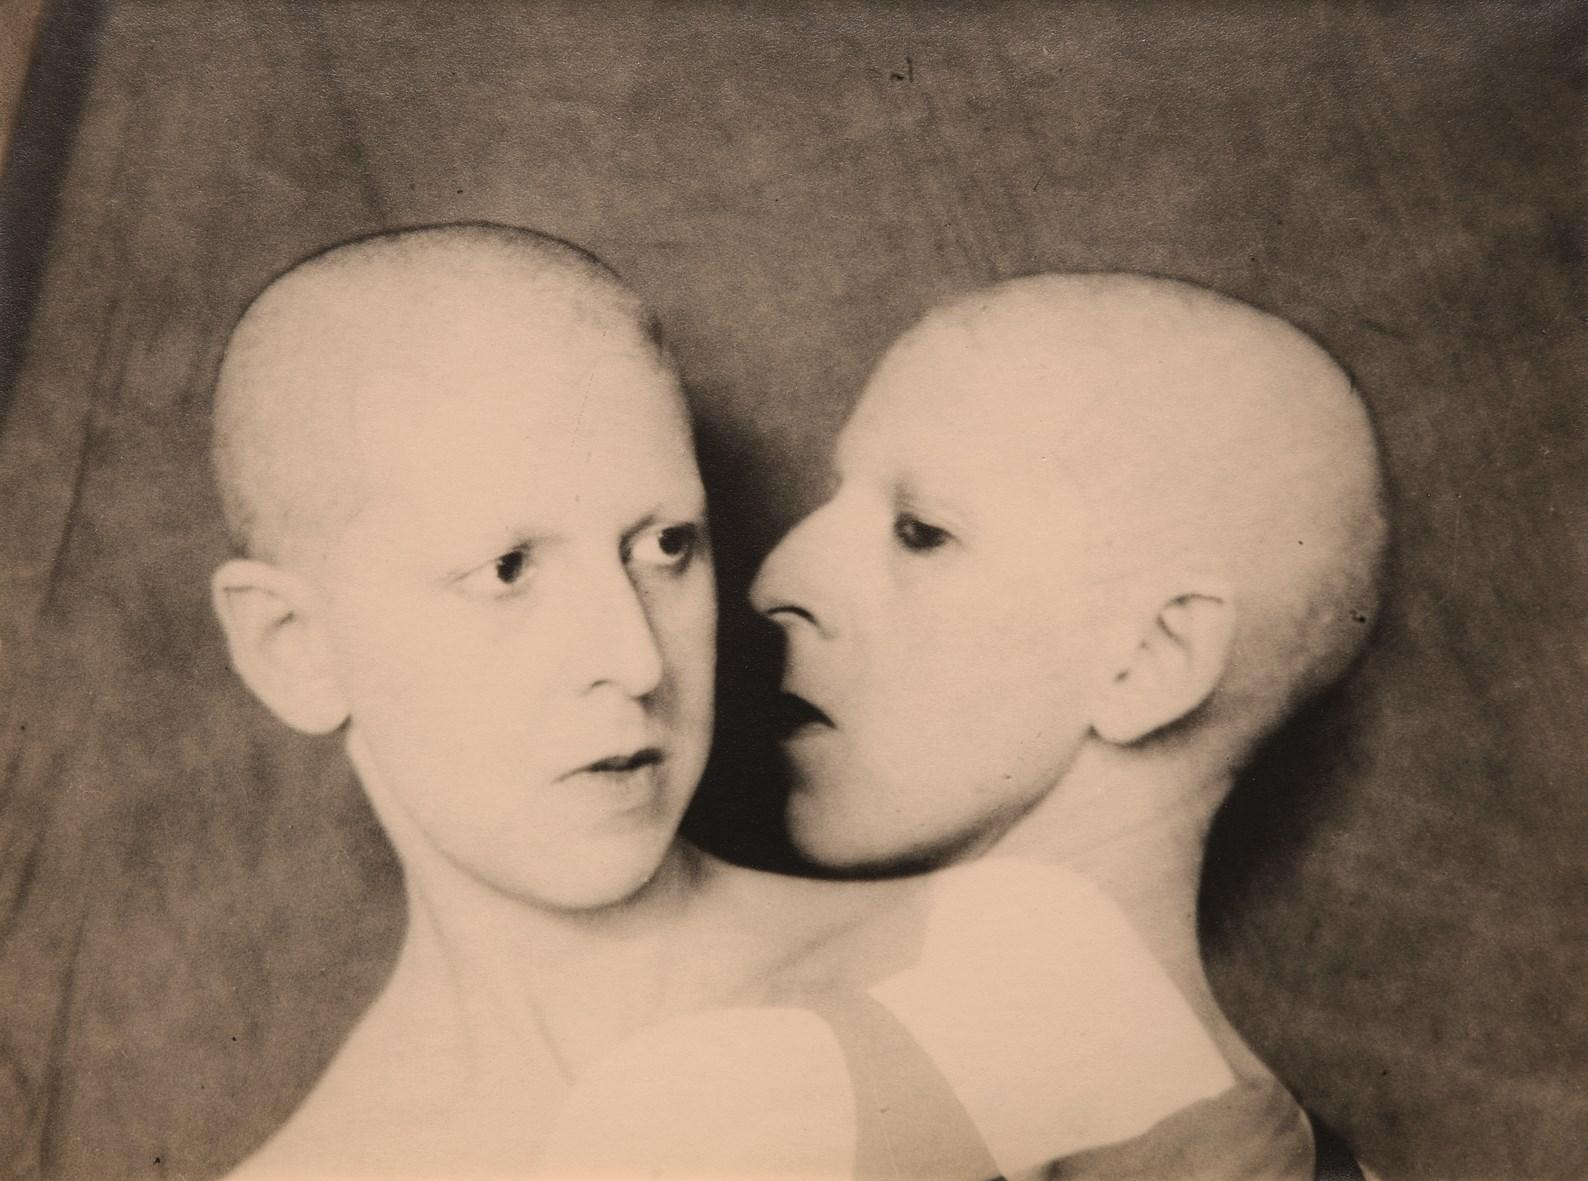 """Que me veux-tu?"", Claude Cahun, 1929. (Collection privée/© Estate of Claude Cahun/Photo: Philippe Migeat)"